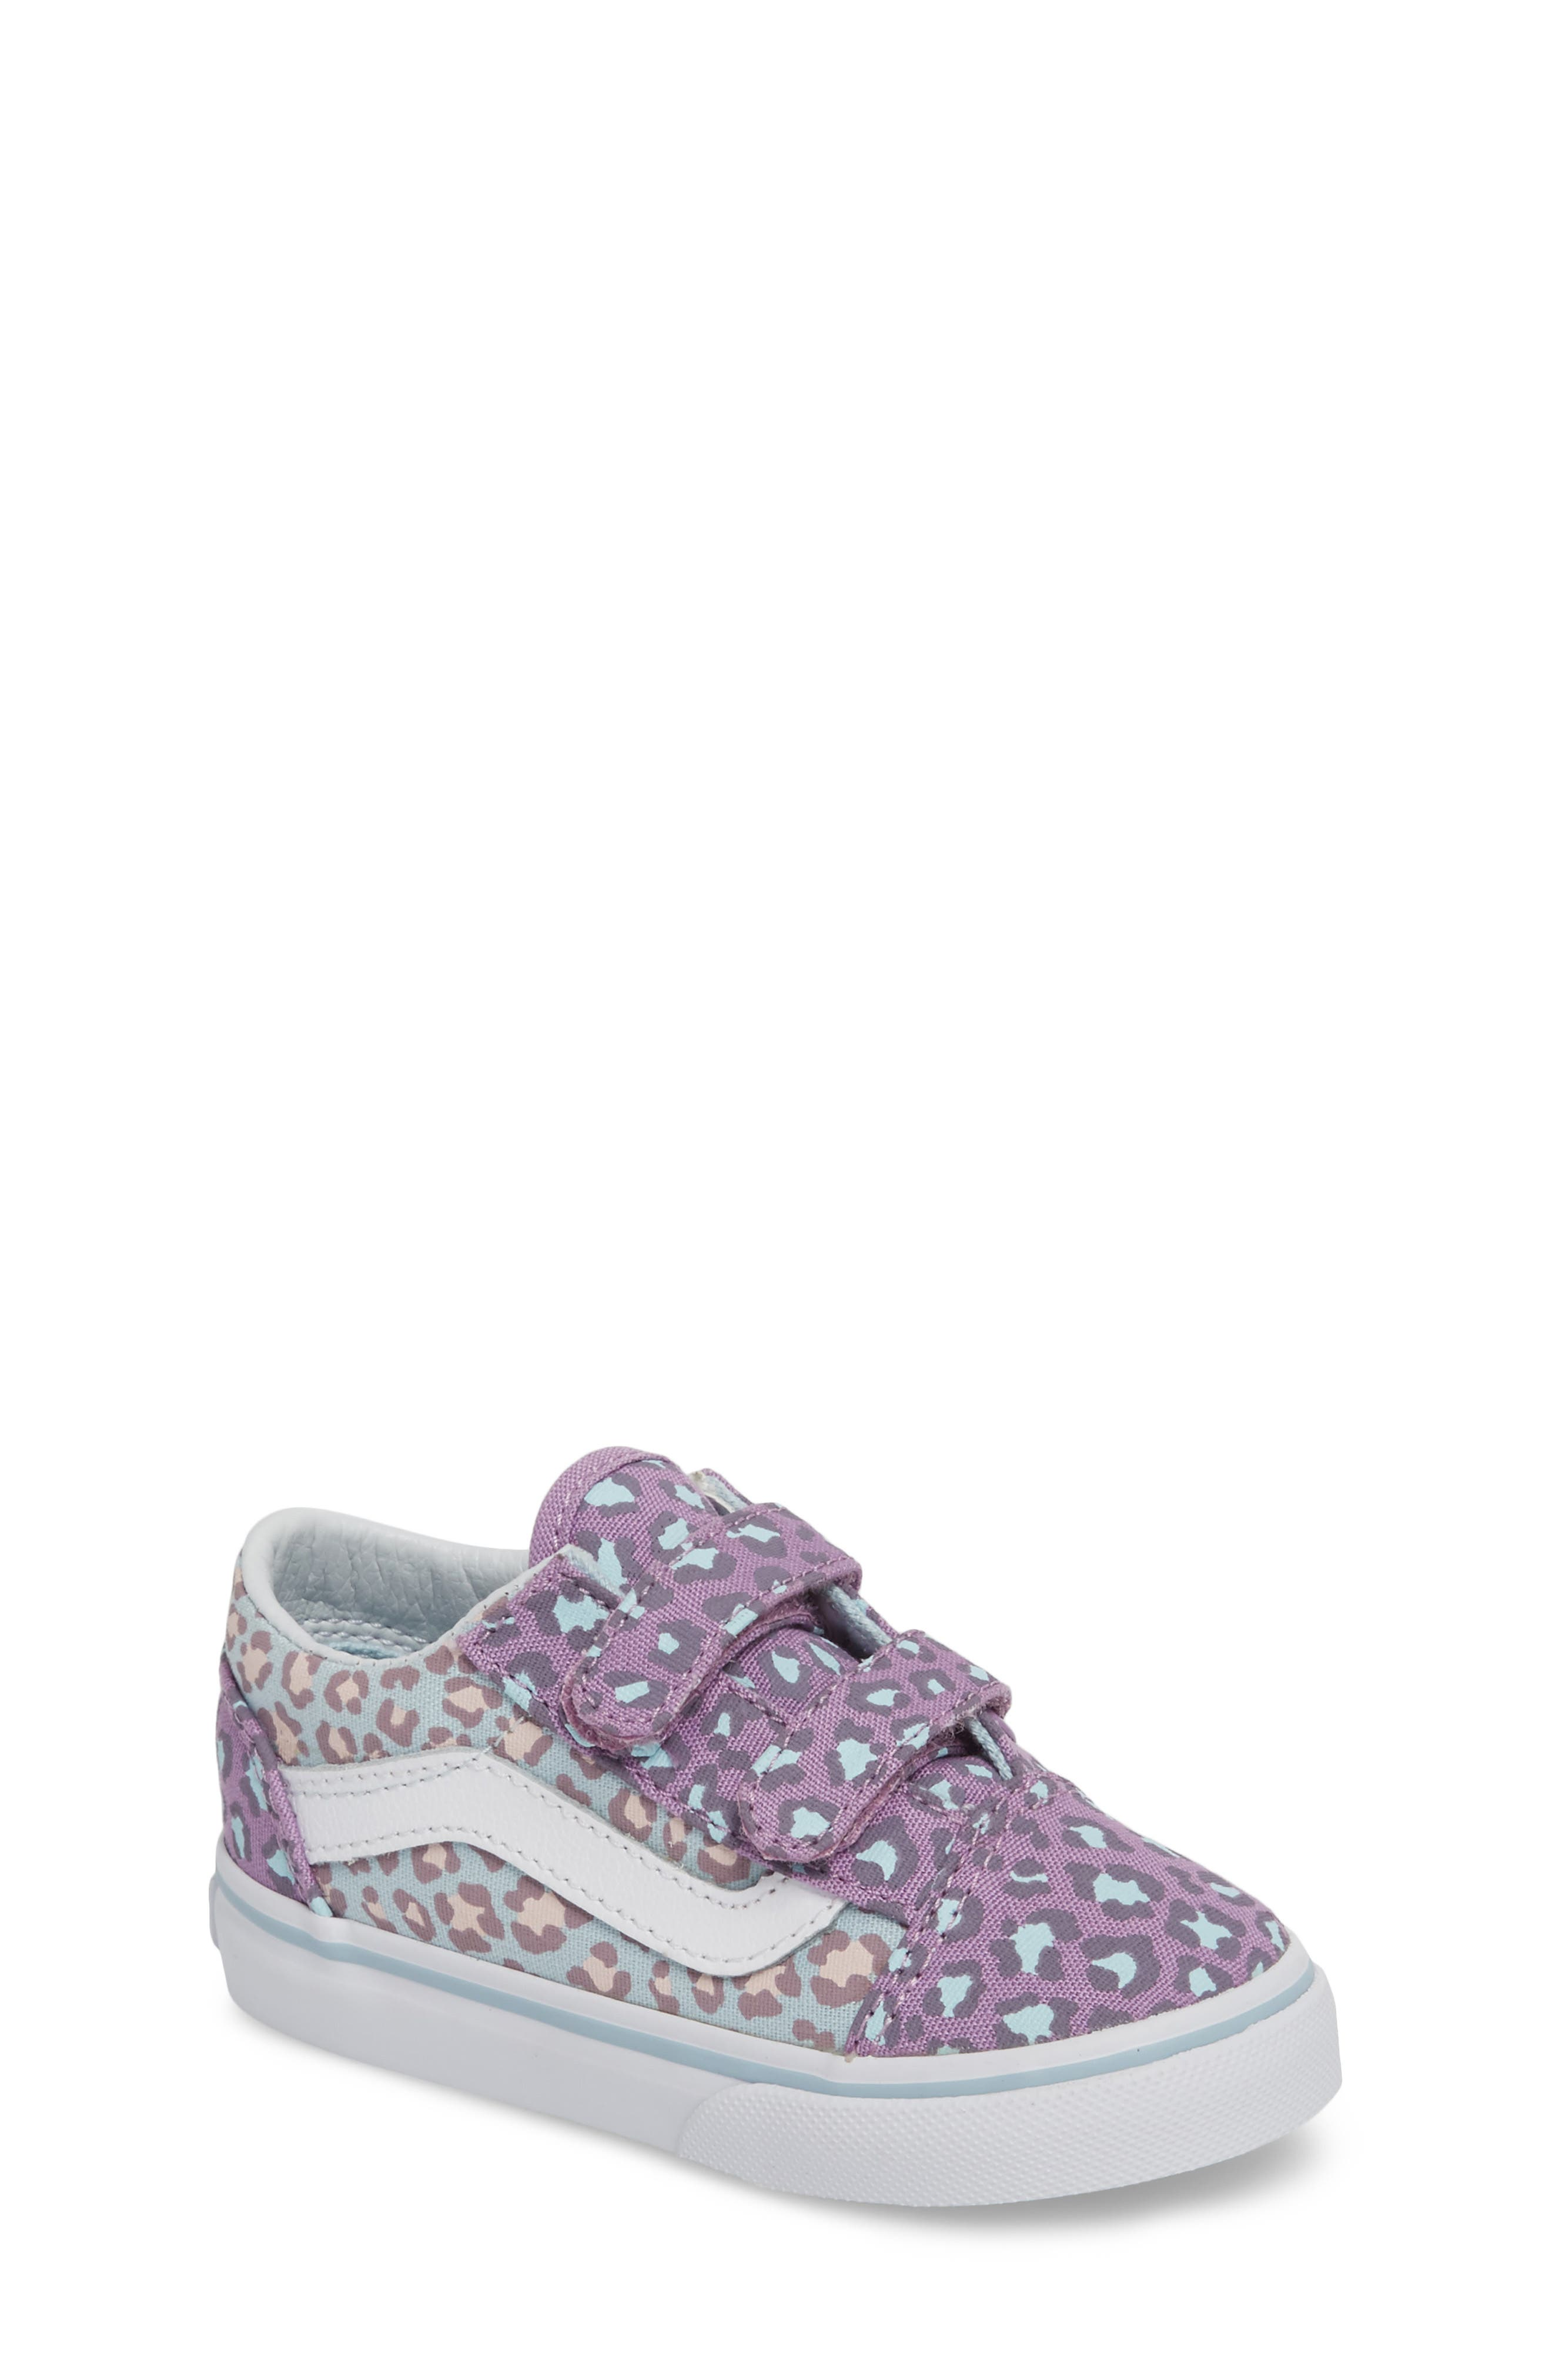 Infant Girls Vans Old Skool V Sneaker Size 3 M  Blue